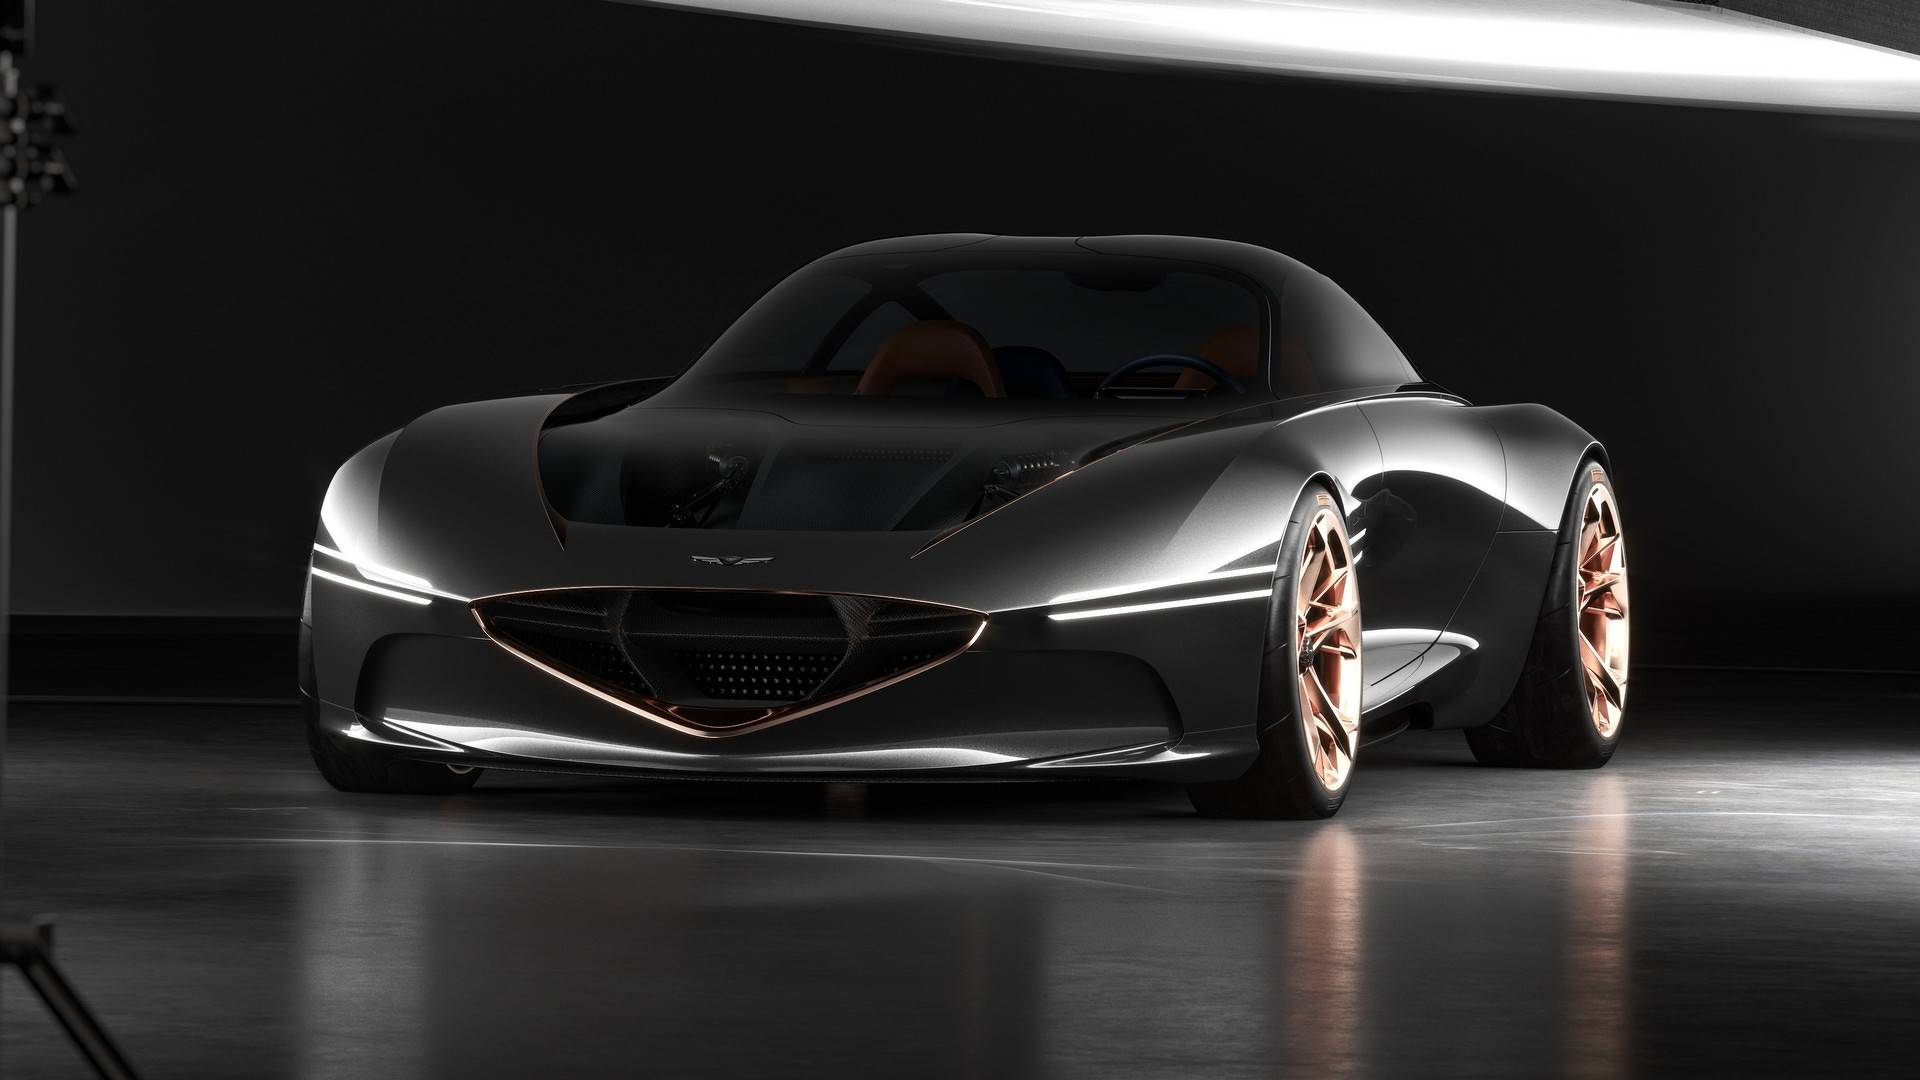 The South Korean premium automotive brand Genesis has revealed Essentia, a conceptual coupe car envisioned as a trailblazer model for an all-new Gran Turismo-class production vehicle scheduled for 2020